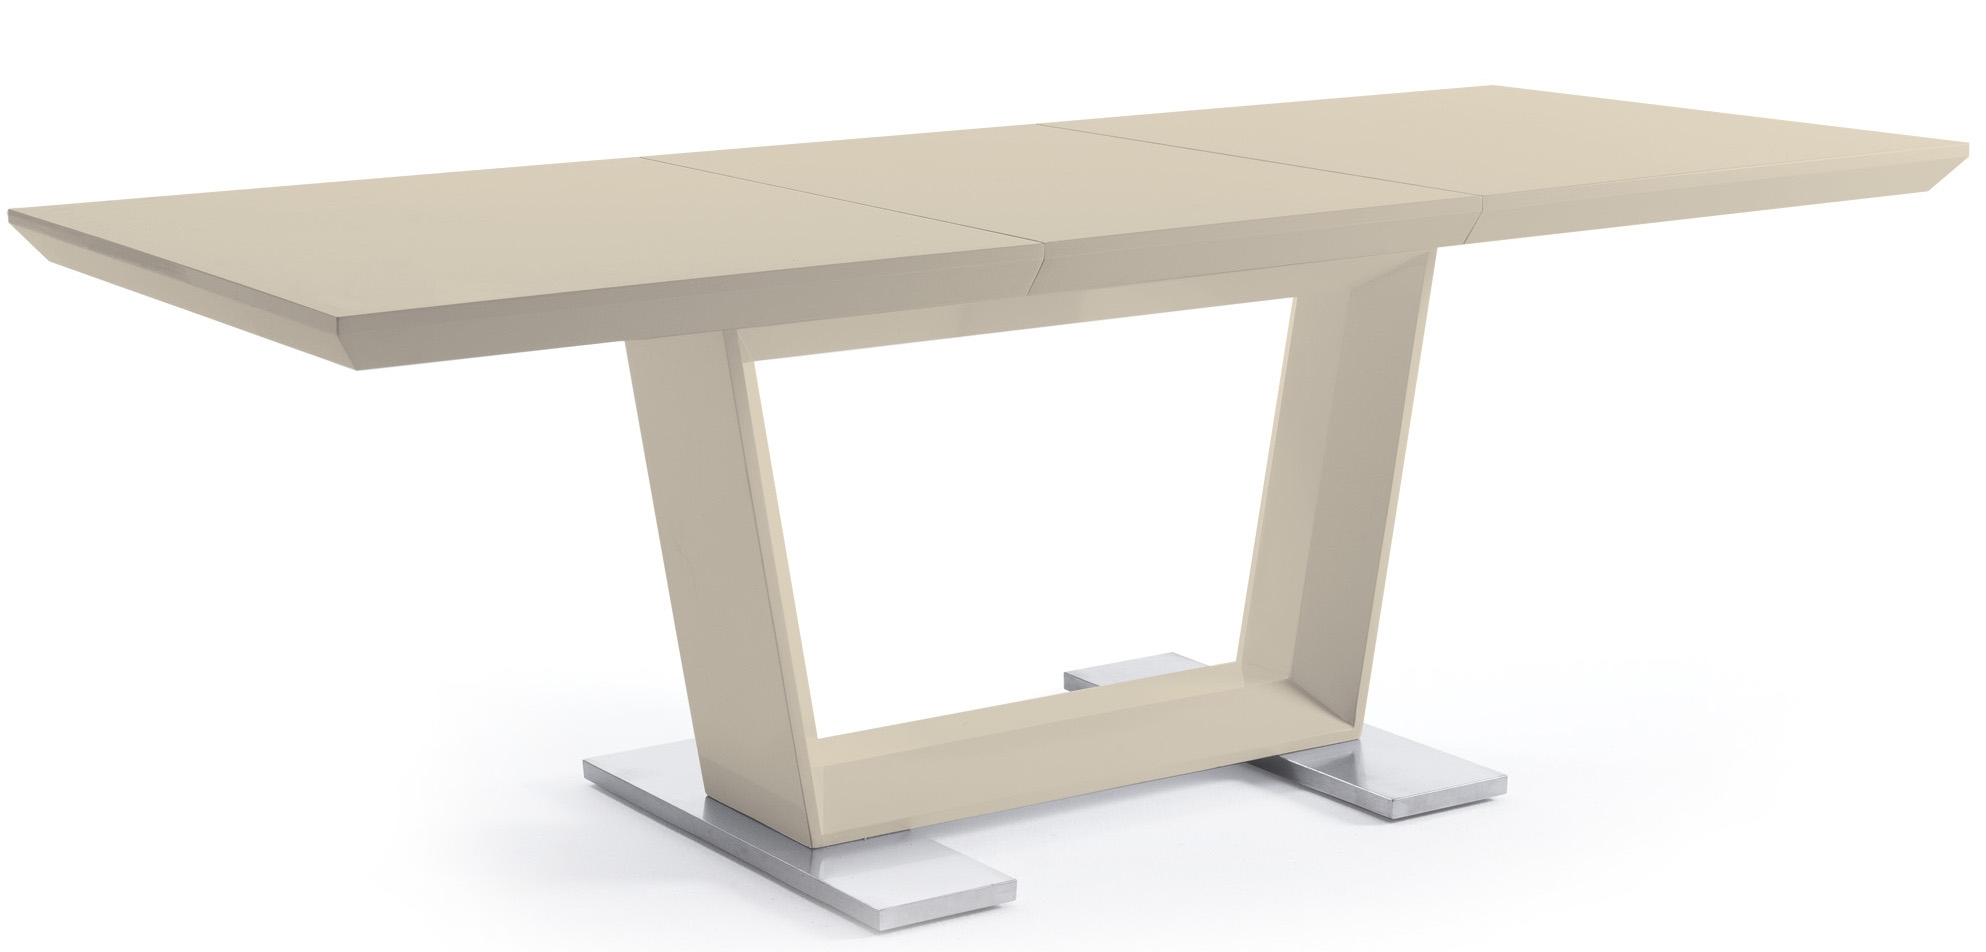 Table rectangulaire design conceptions de maison Table rallonge design